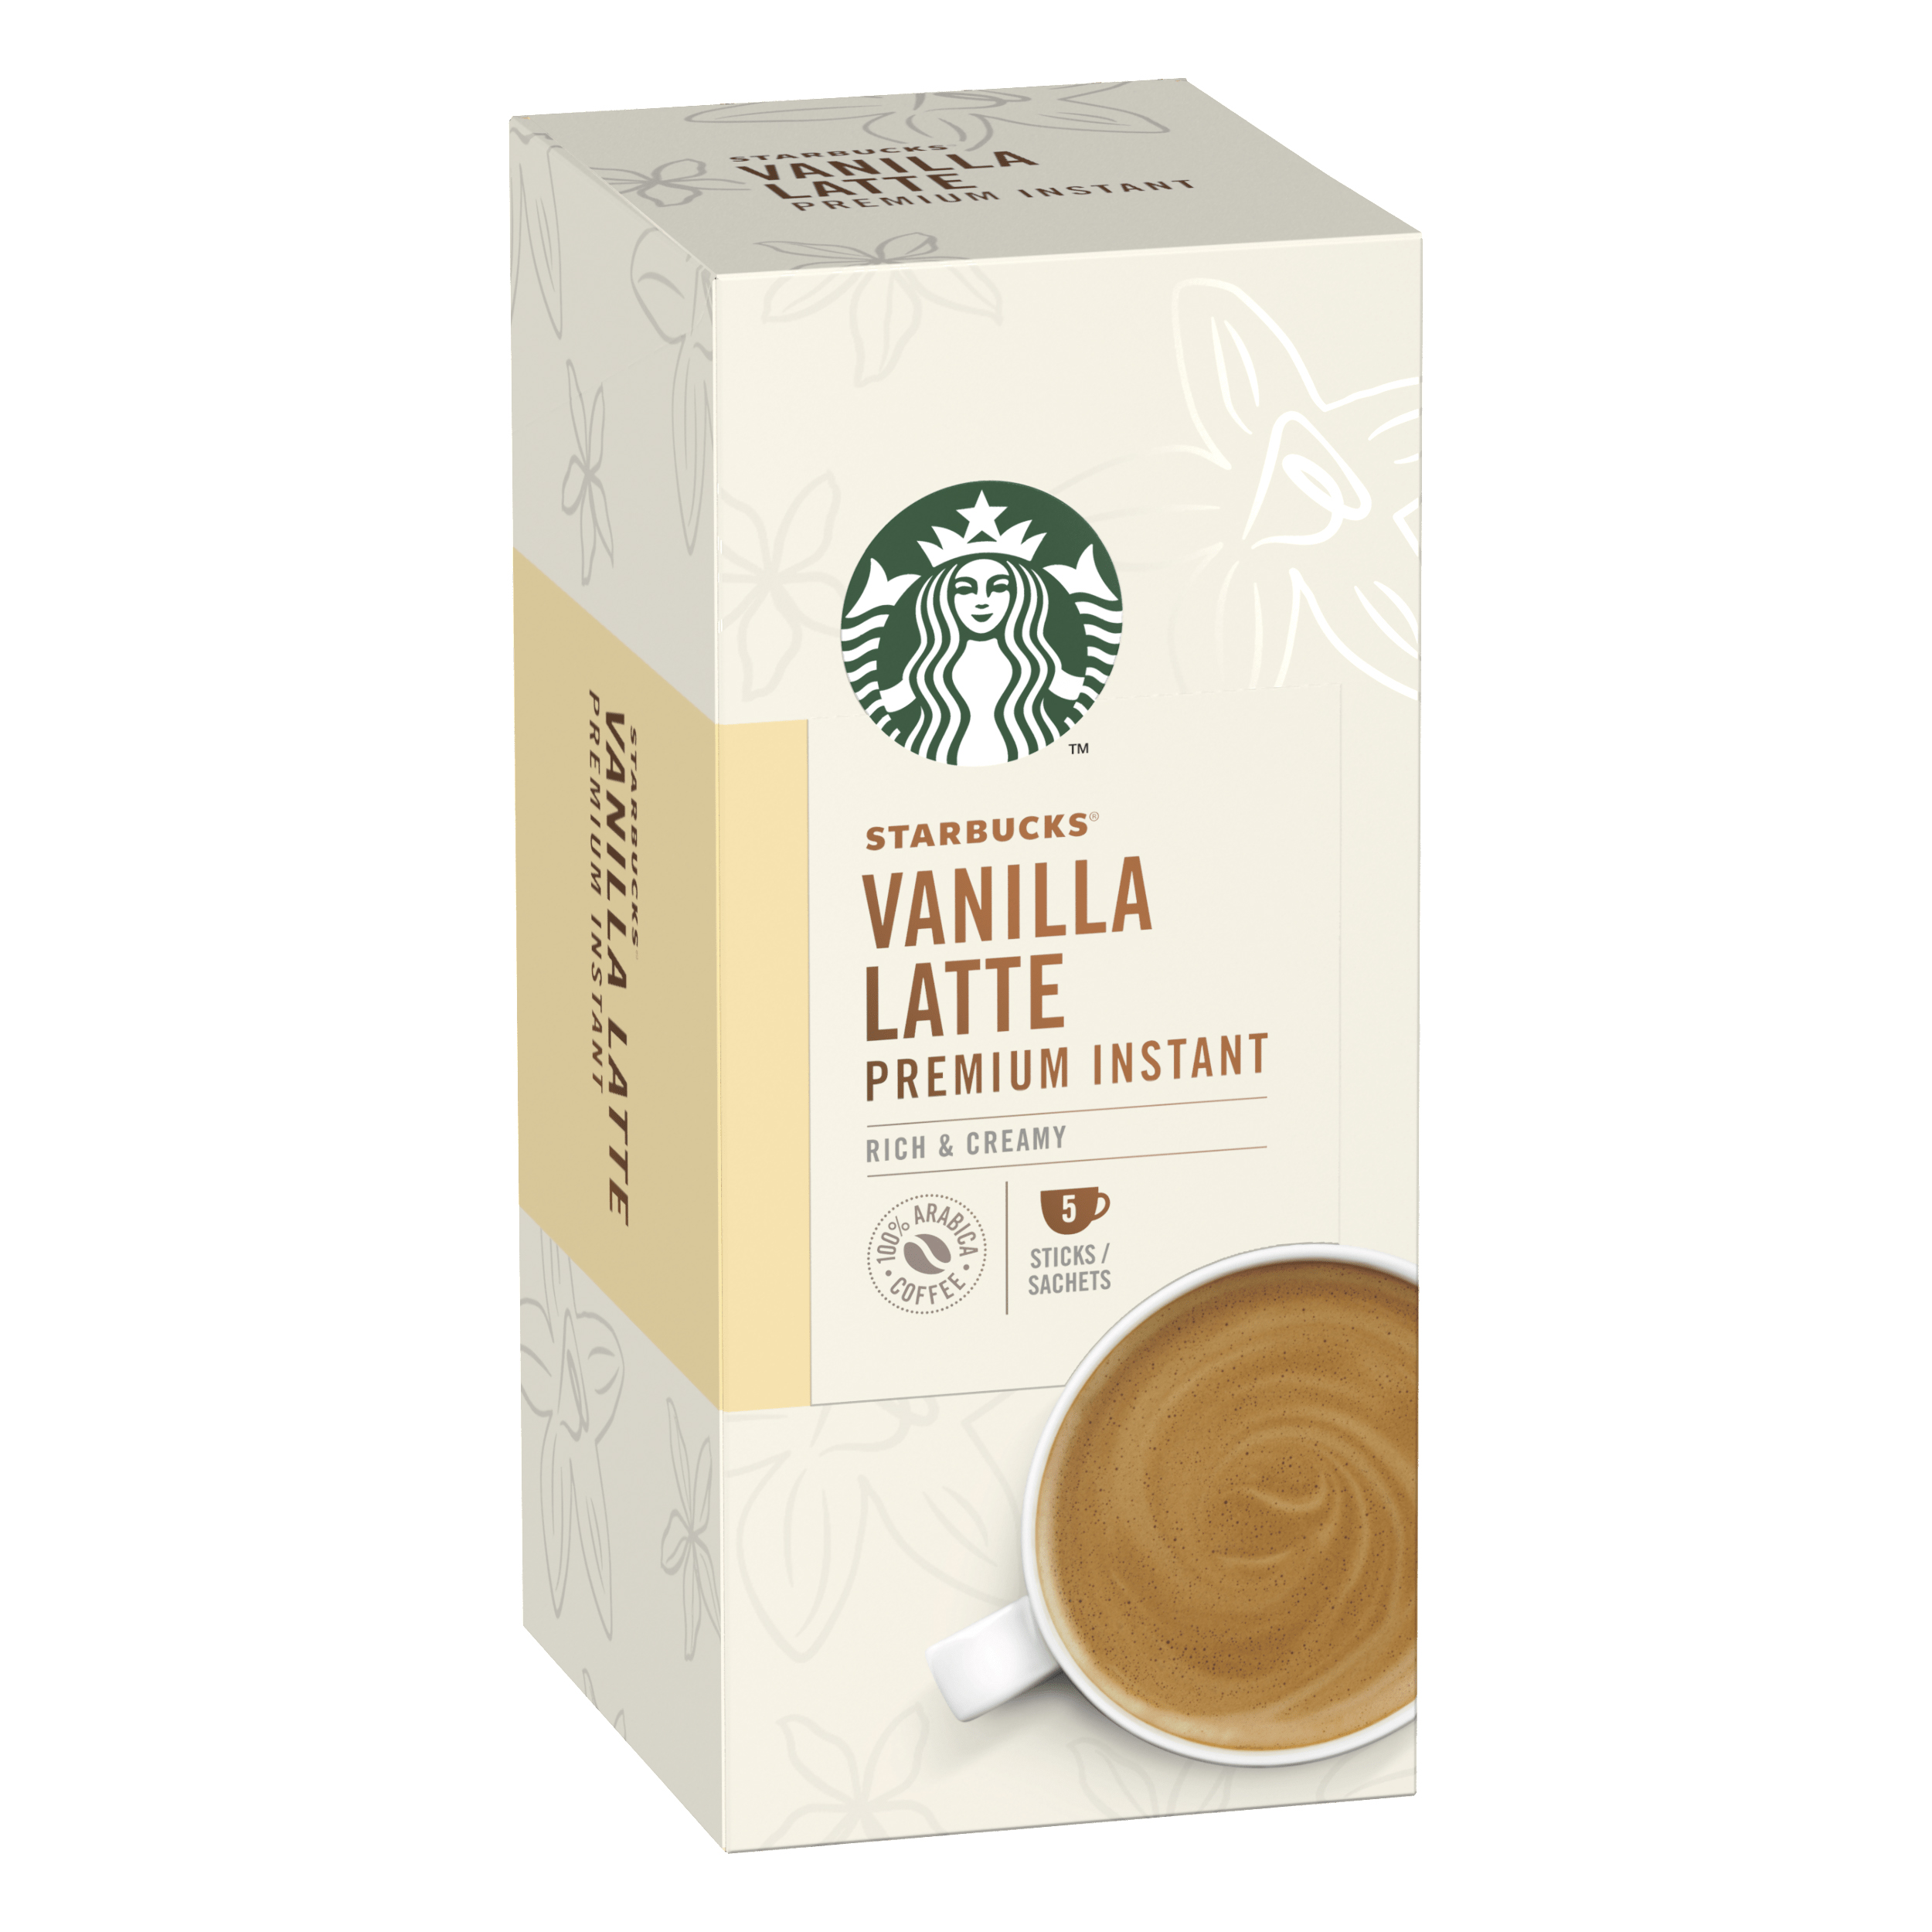 Instant coffee Starbucks Vanilla Latte Sachets 6 Boxes Each with 5 x 107g Sachets Ref 7613038558677